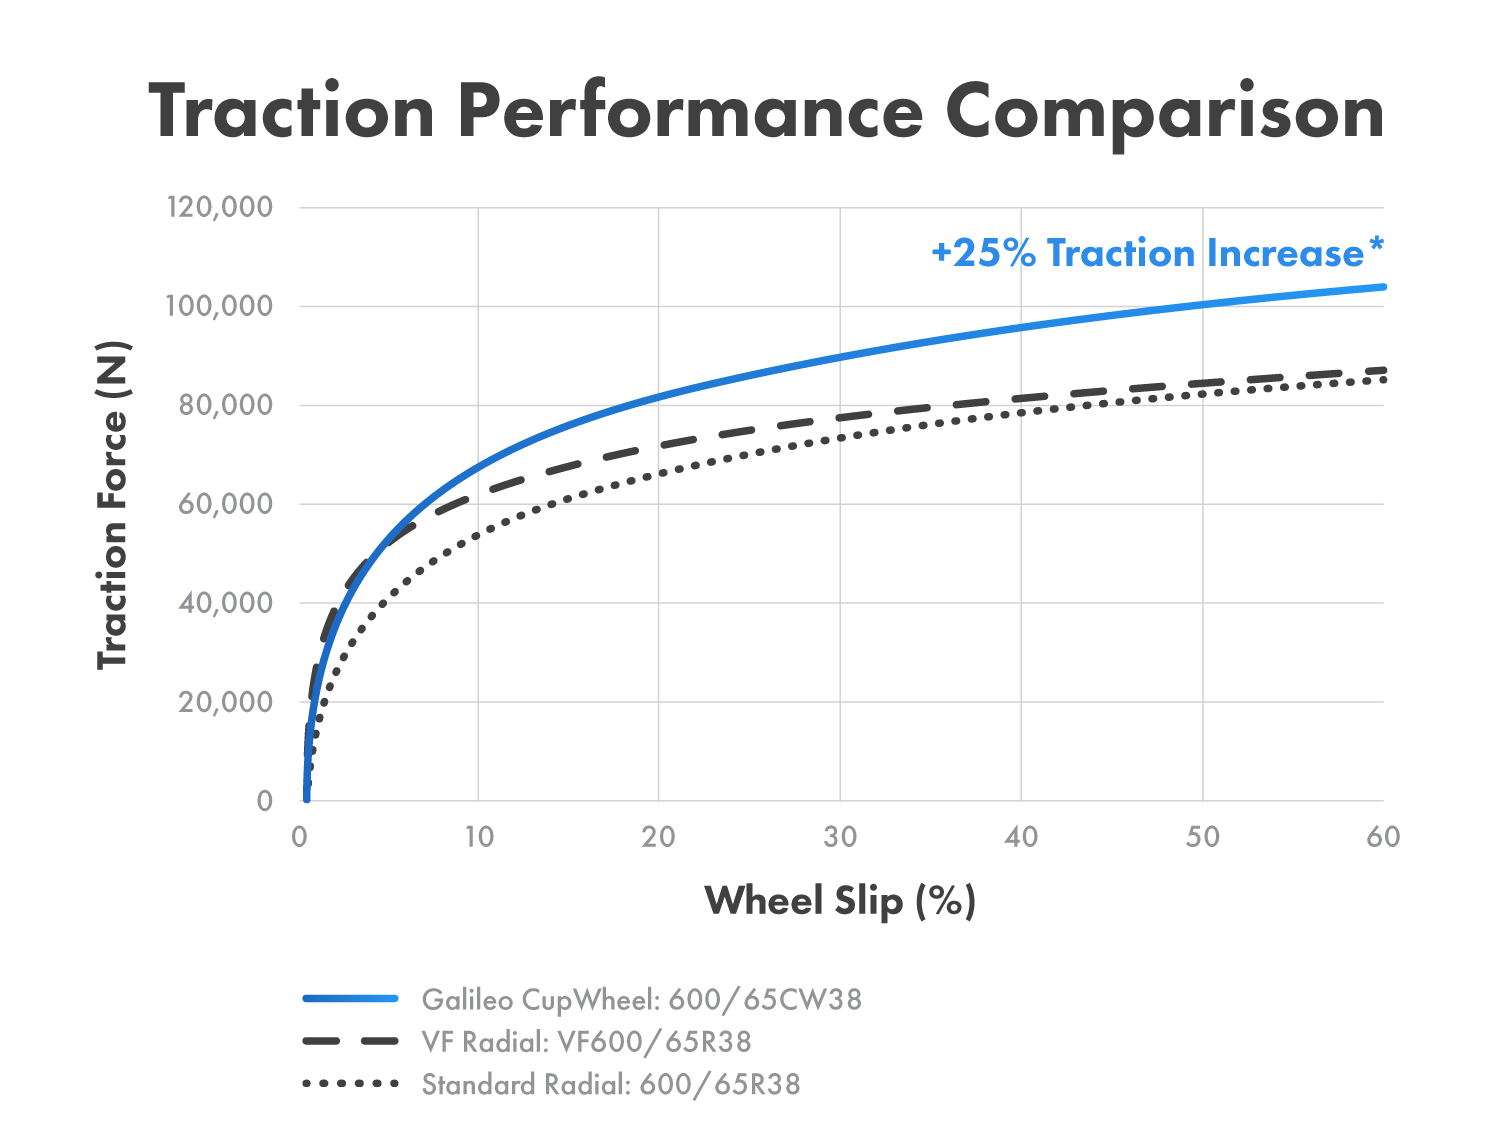 Early testing shows the Galileo CupWheel delivering an average approximate traction increase of 25% over a standard radial tractor tire. Traction increase will vary based on tire size, soil type, ground firmness, percent slippage and other factors.